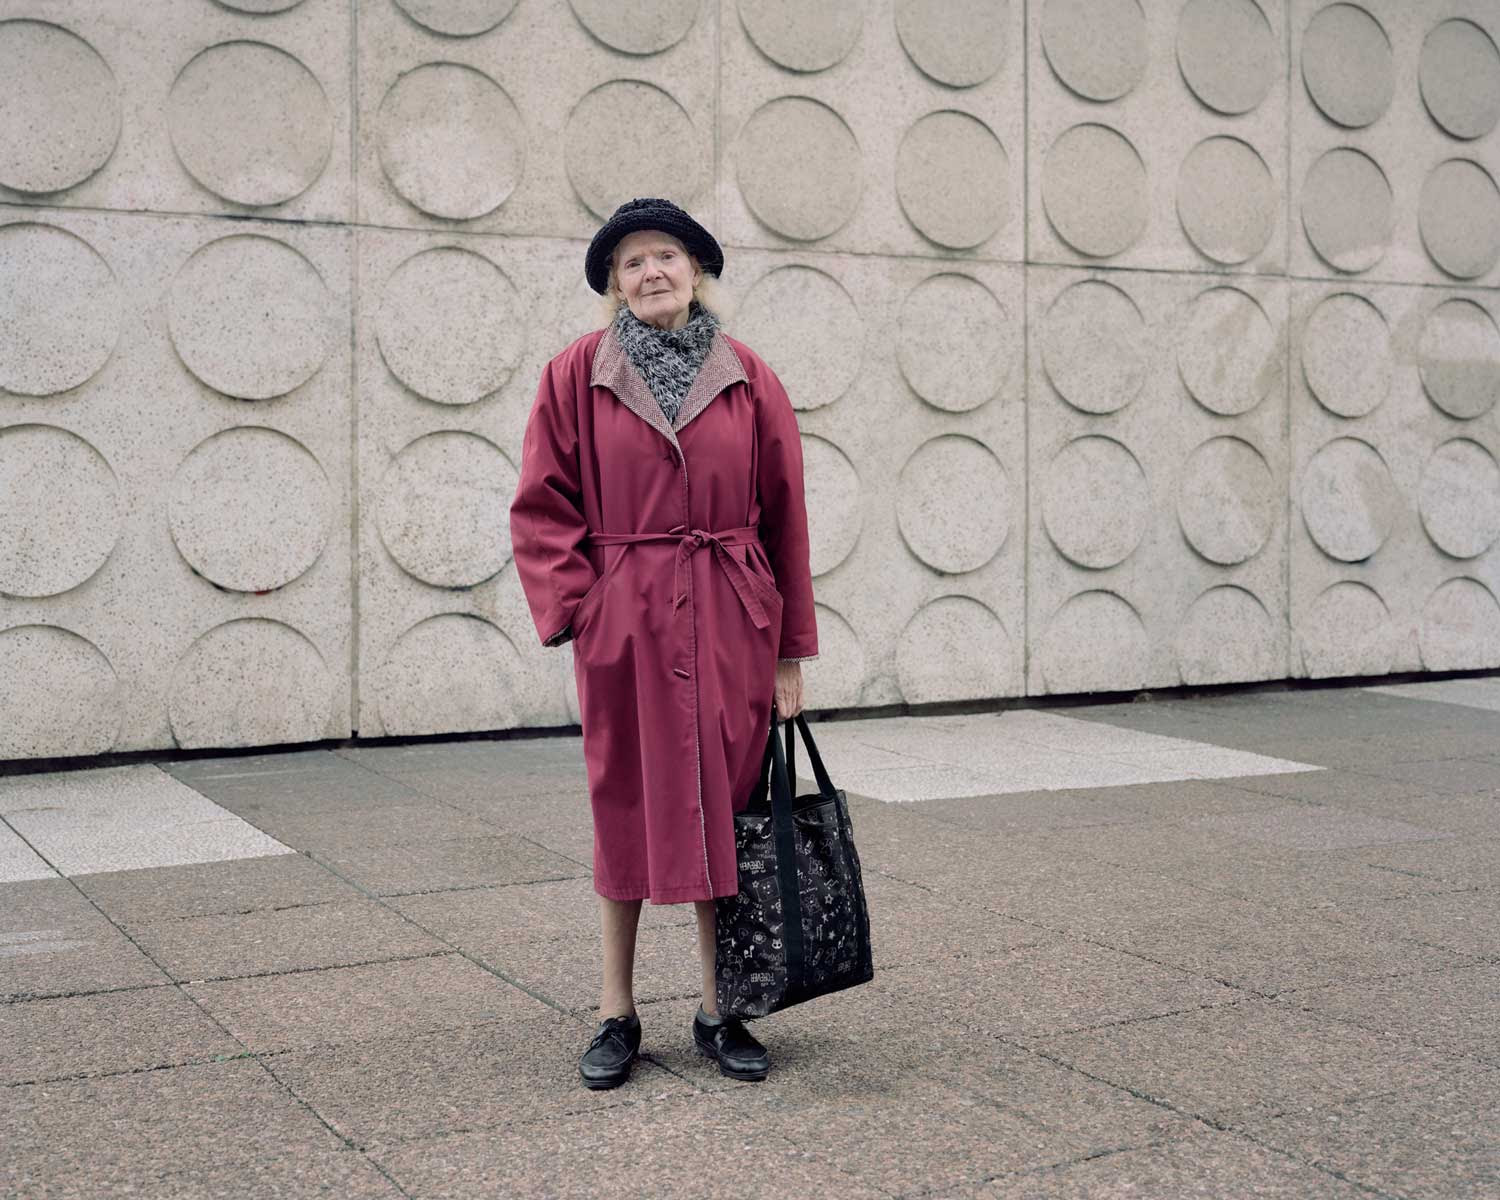 Paulette, 83, photographed in 2015 at Les Damiers, Courbevoie, by Abro+ Henri Kandjian, Jacques Binoux and Michel Folliasson (1976-78).